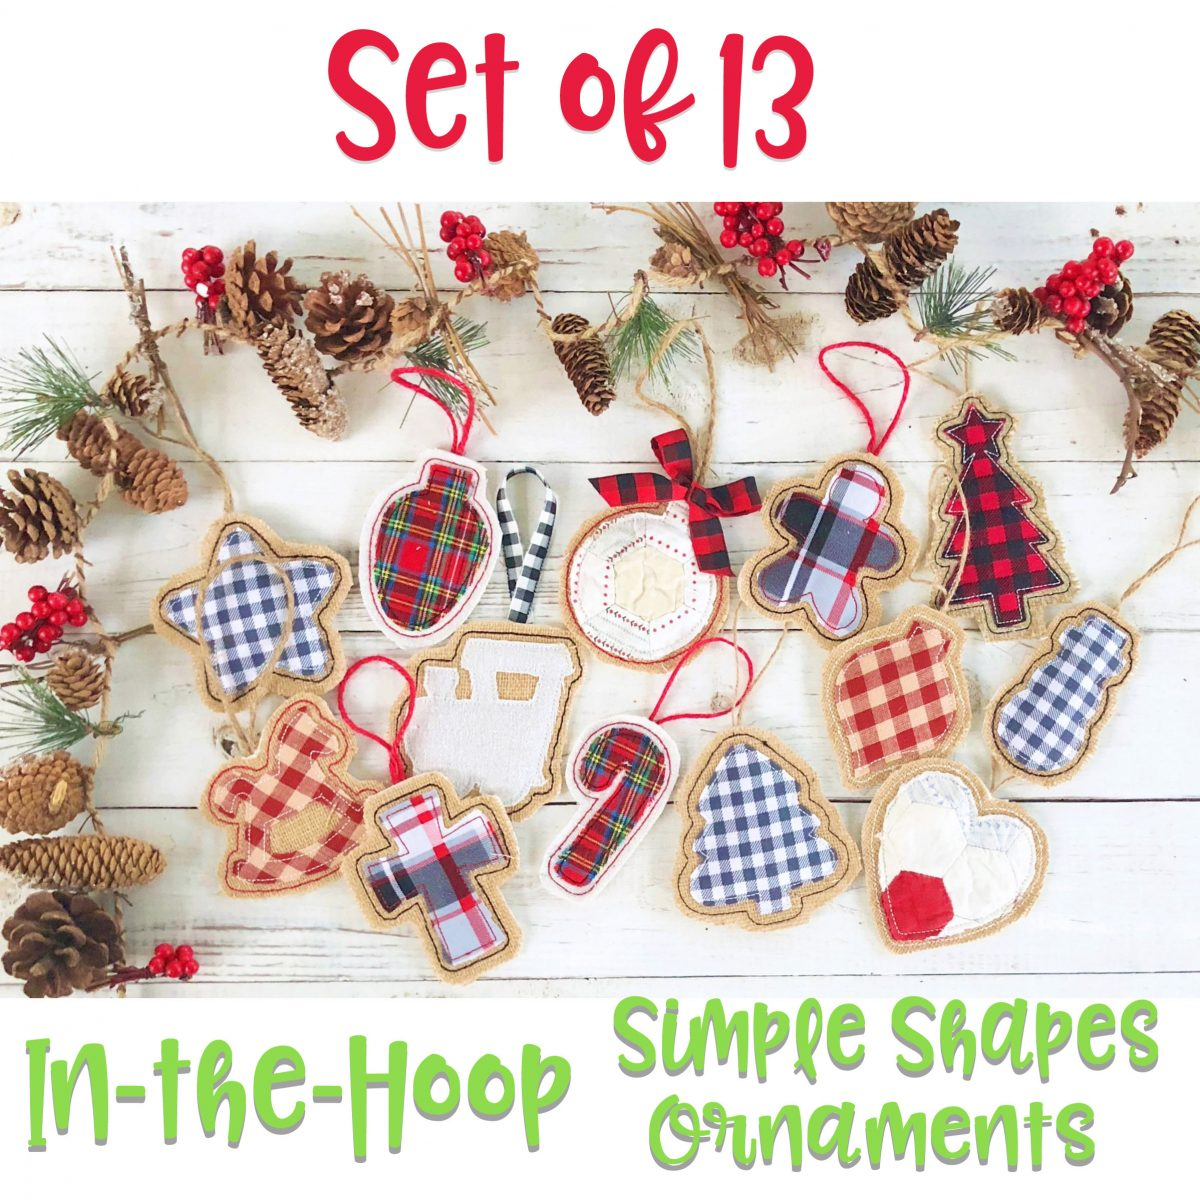 Christmas Ornament Set.In The Hoop Simple Shapes Ornament Set